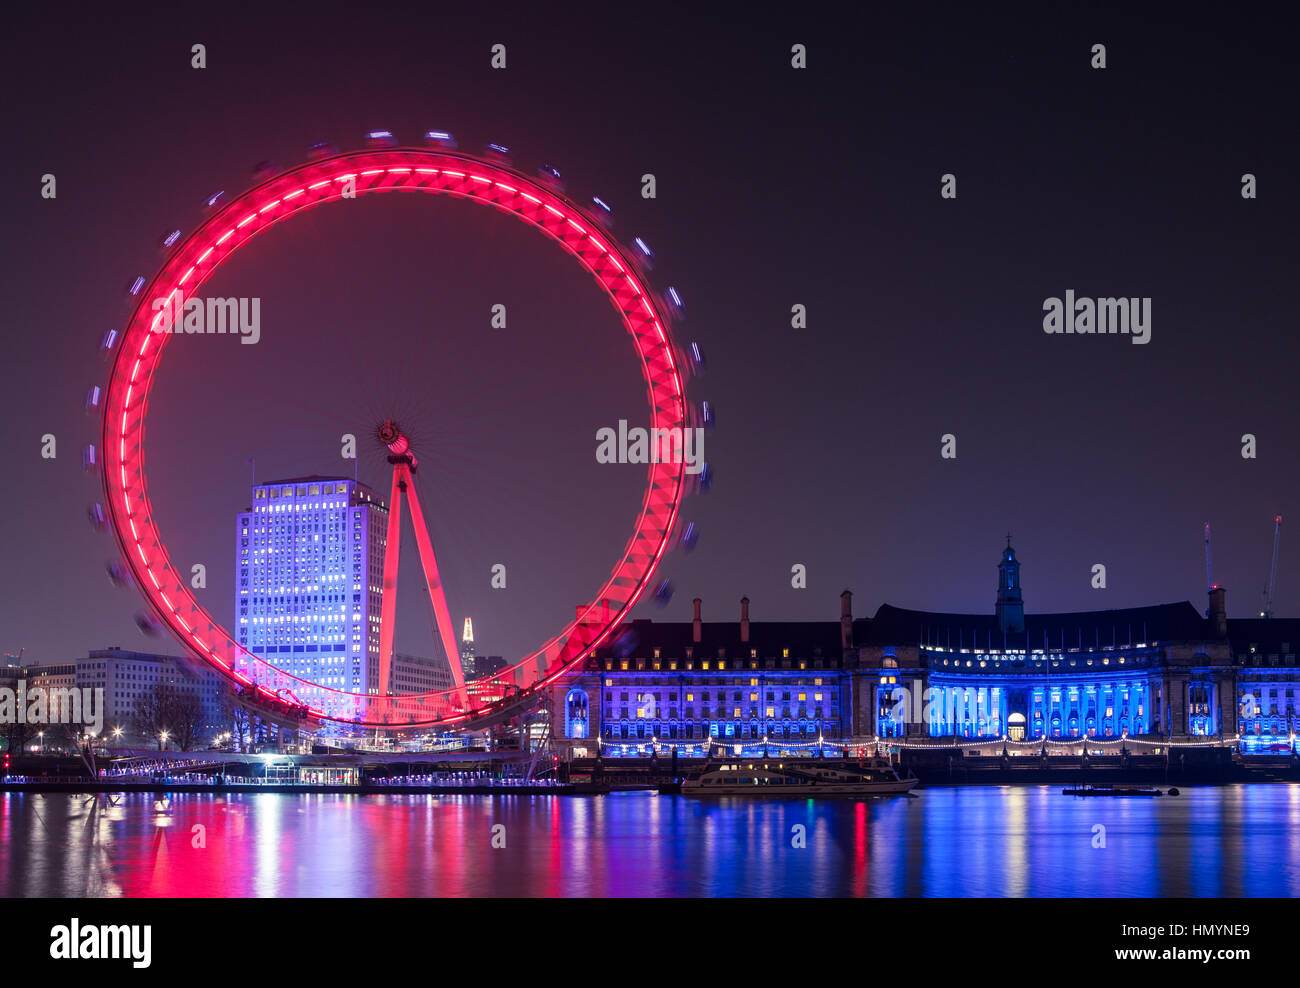 London Eye wheel on River Thames at night - Stock Image